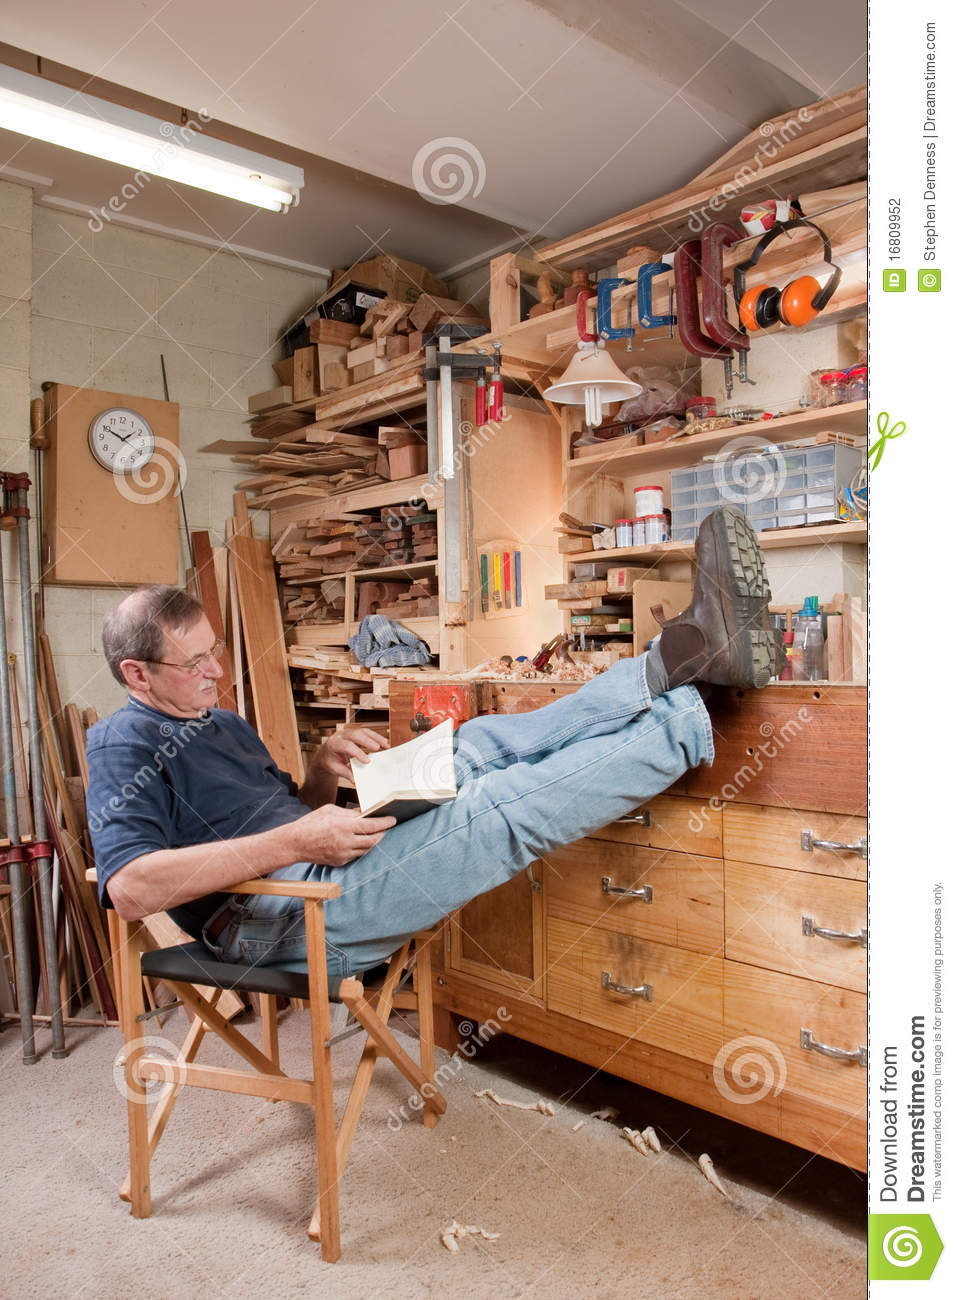 Man resting with feet up in workshop